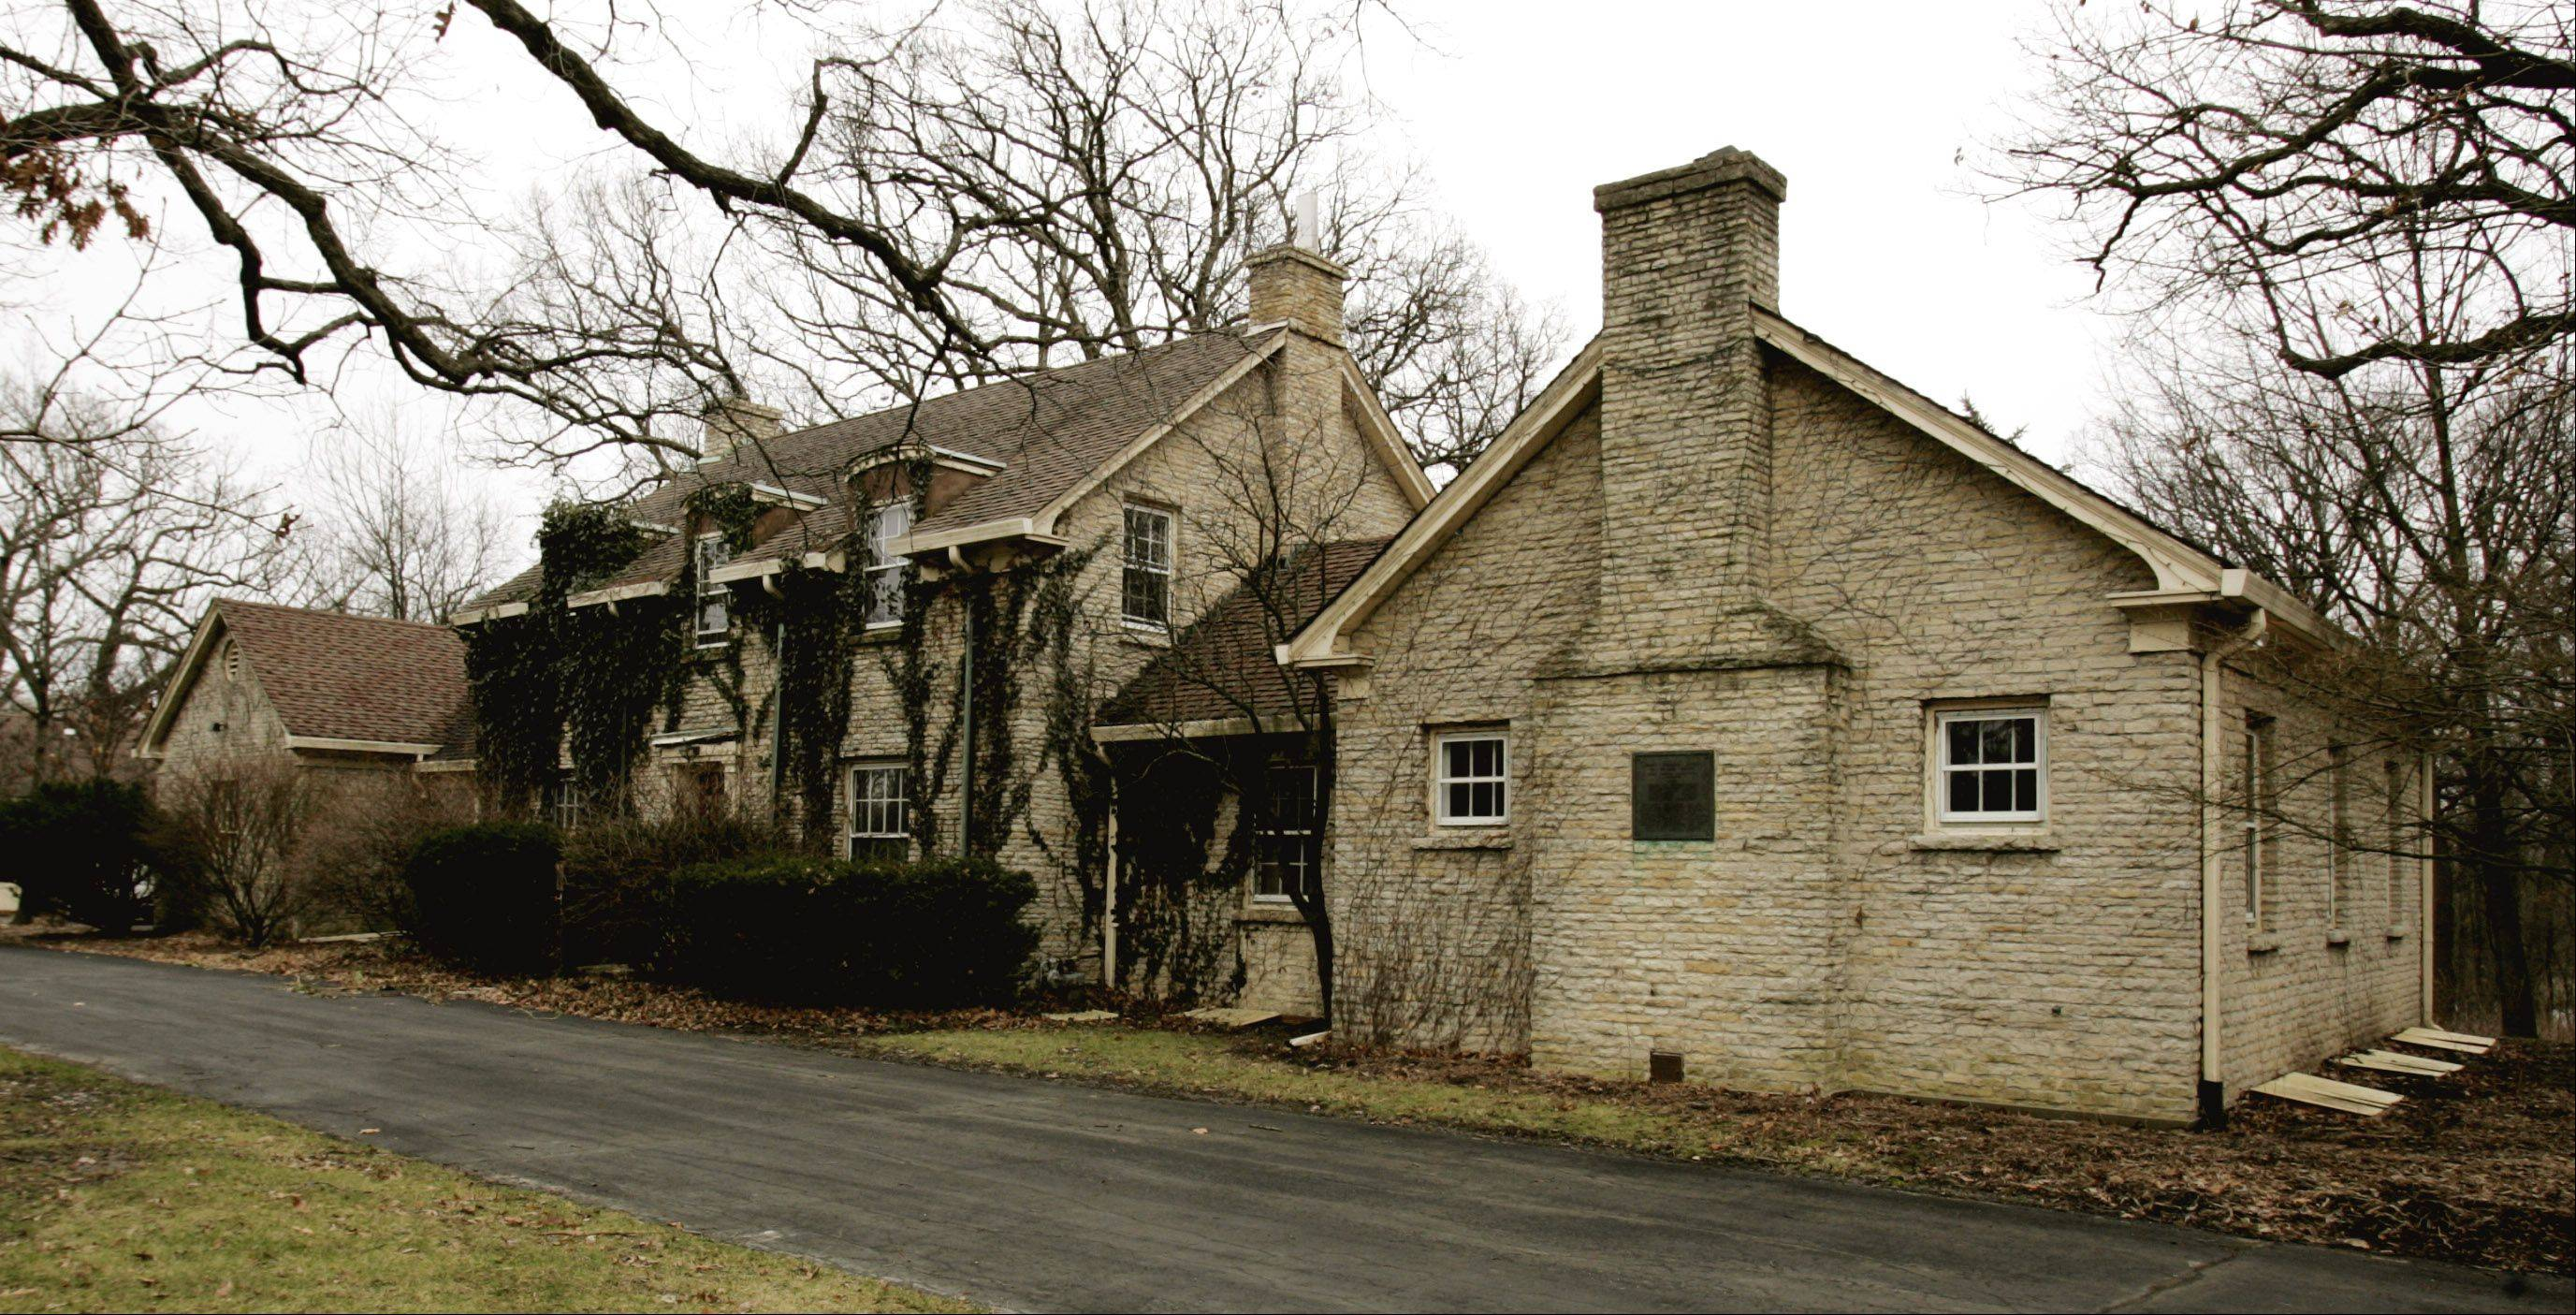 DuPage forest preserve district's historic sites